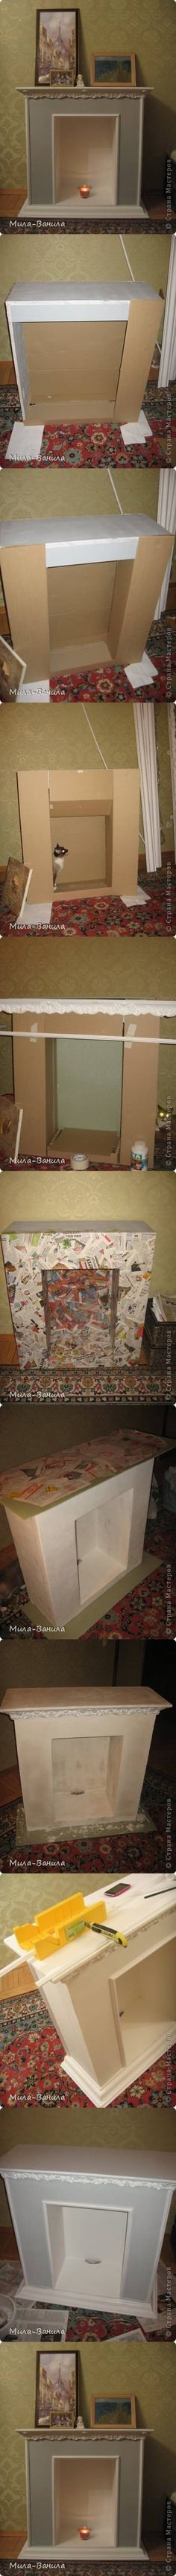 DIY Cardboard Decorated Fireplace Pictures, Photos, and Images for Facebook, Tumblr, Pinterest, and Twitter